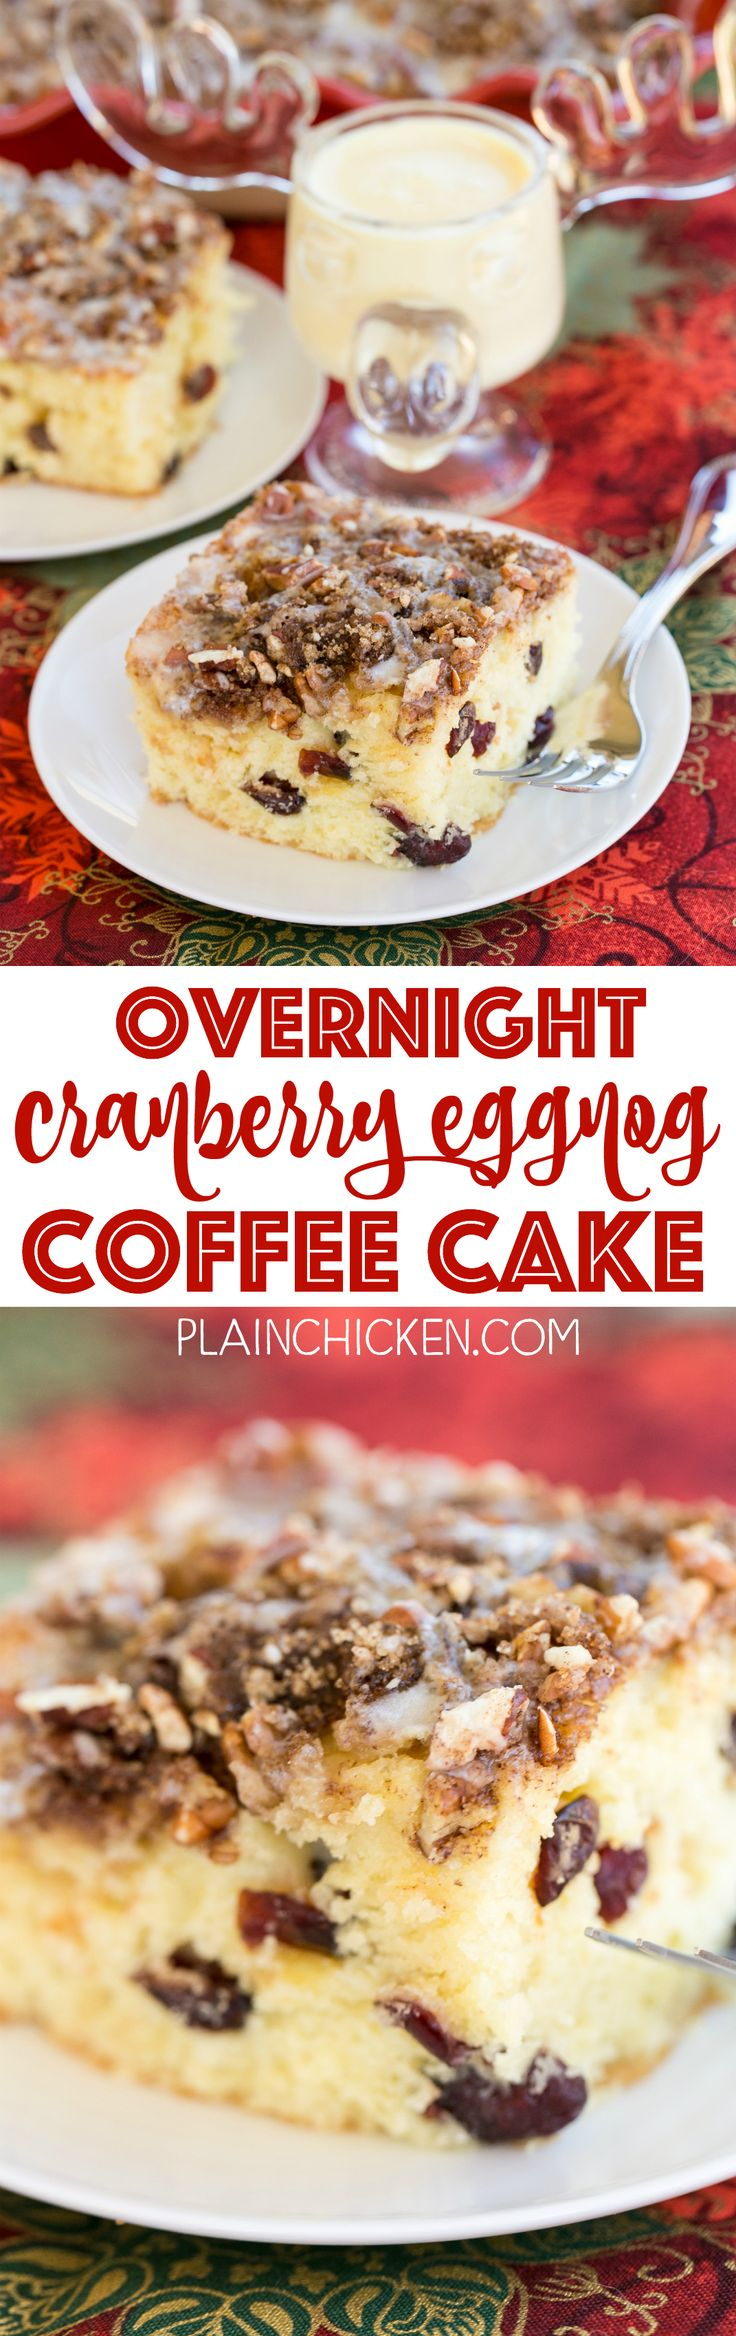 Overnight Cranberry Eggnog Coffee Cake - refrigerate batter overnight ...